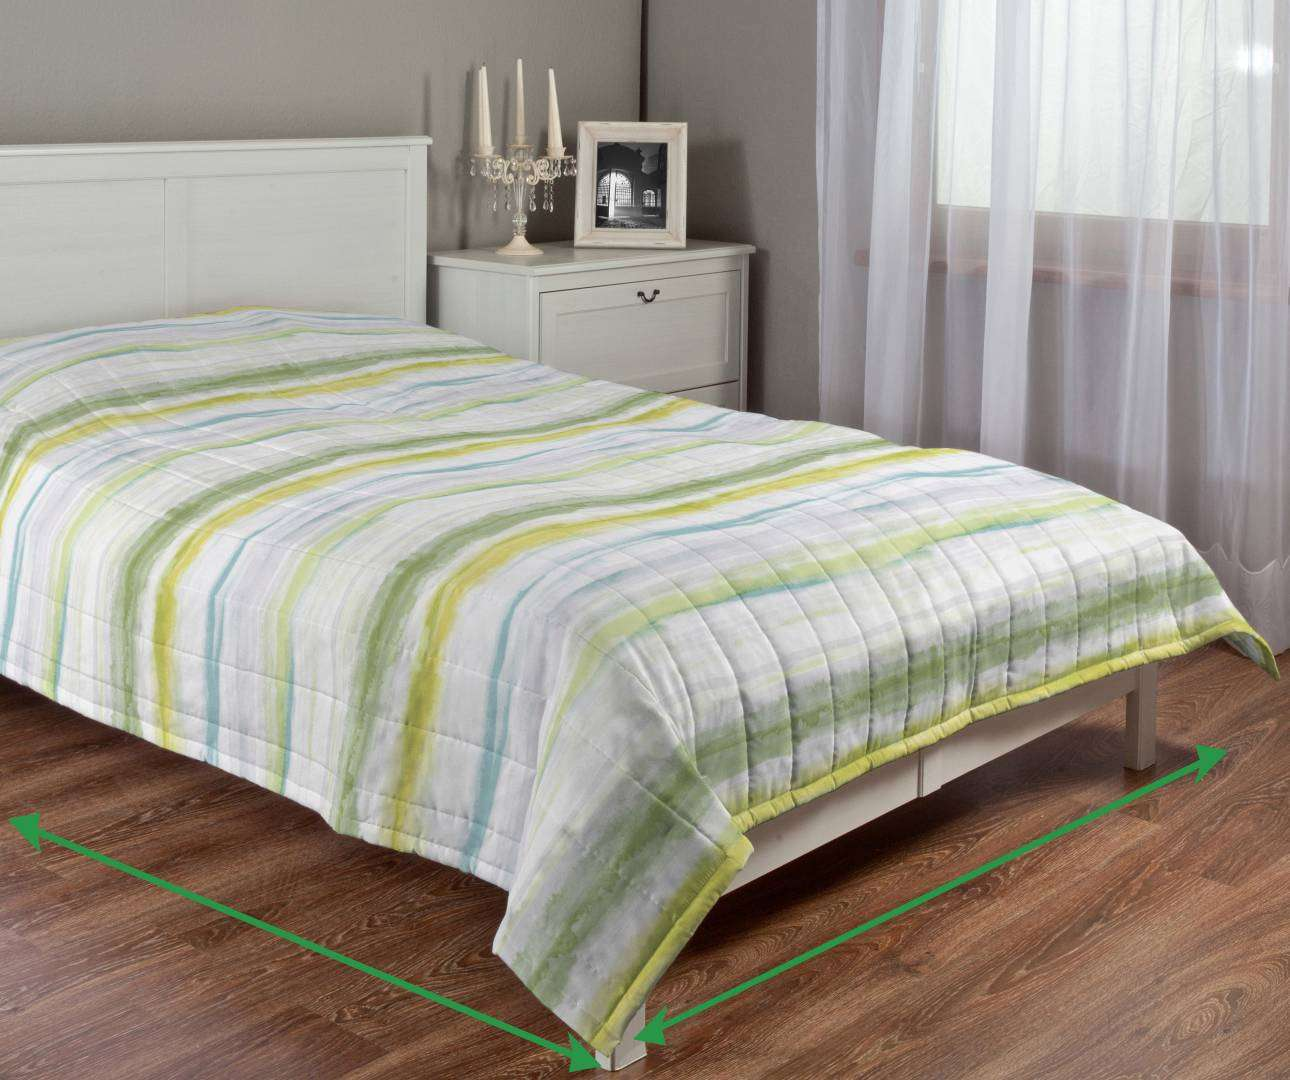 Quilted throw (vertical quilt pattern) in collection Aquarelle, fabric: 140-68